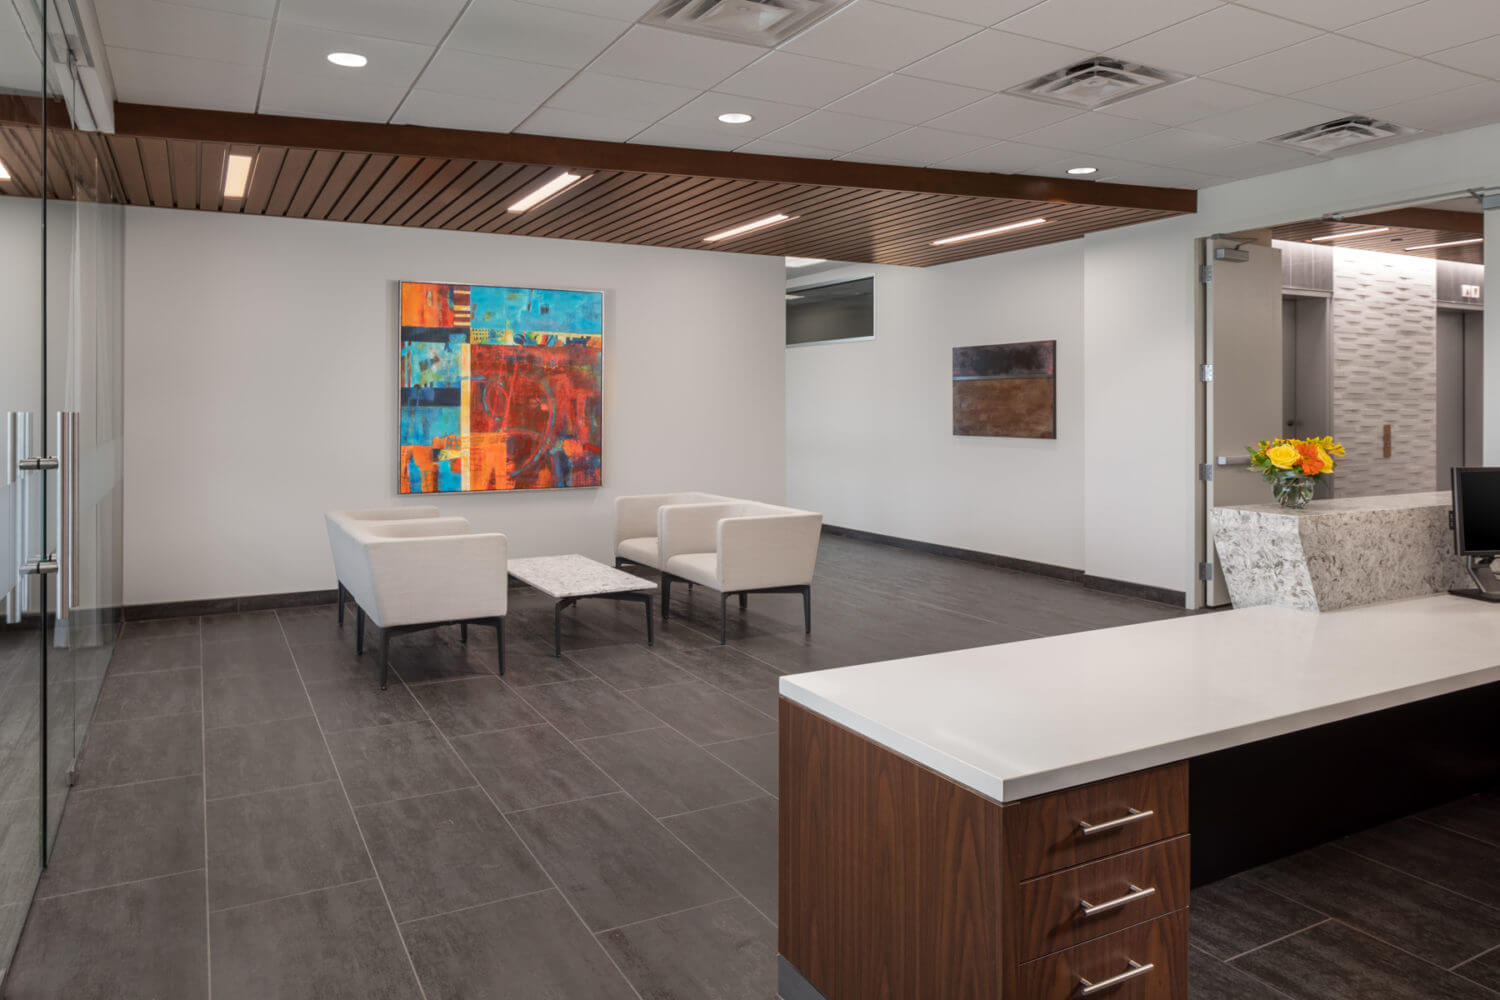 McCarthy Nordburg - Warm Modern Design For Recongized Law Firm